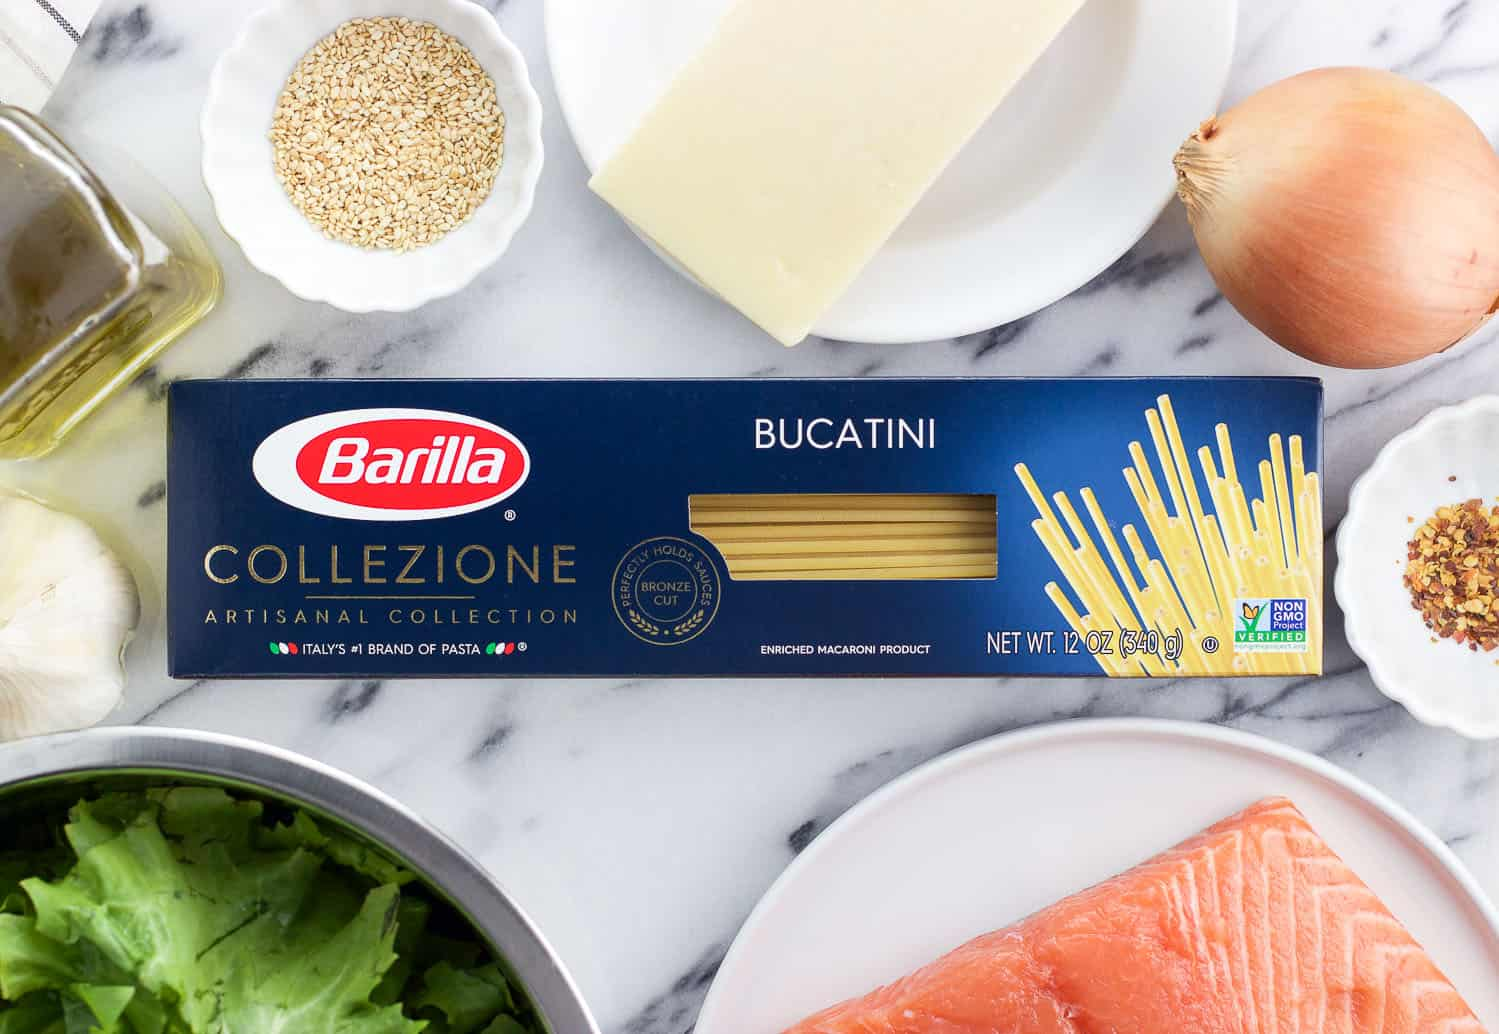 A box of Barilla Bucatini on a marble board surrounded by the rest of the recipe ingredients